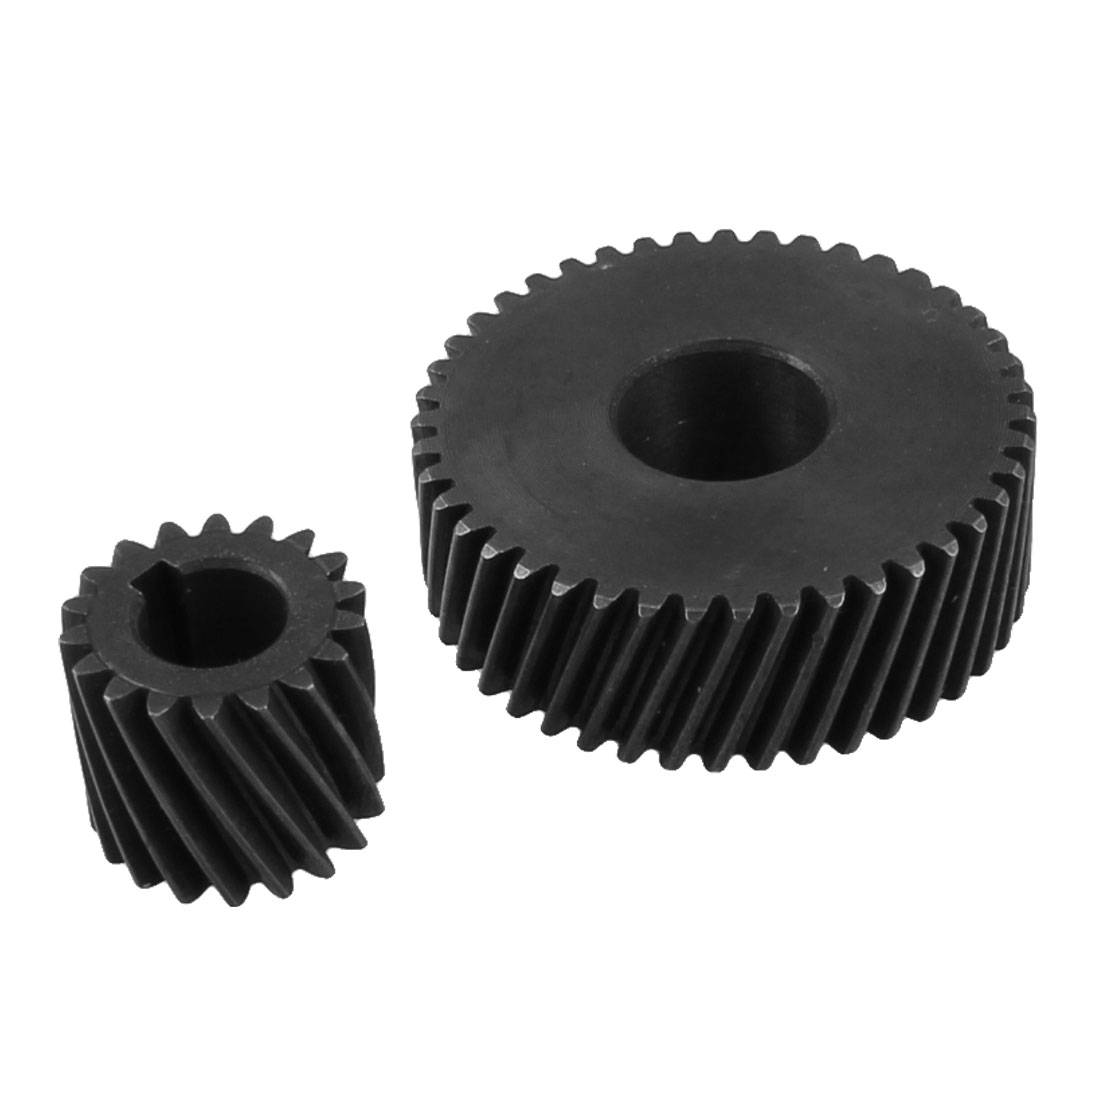 Spiral Bevel Gear Set for Hitachi 110 CM4SB Marble Cutting Machines